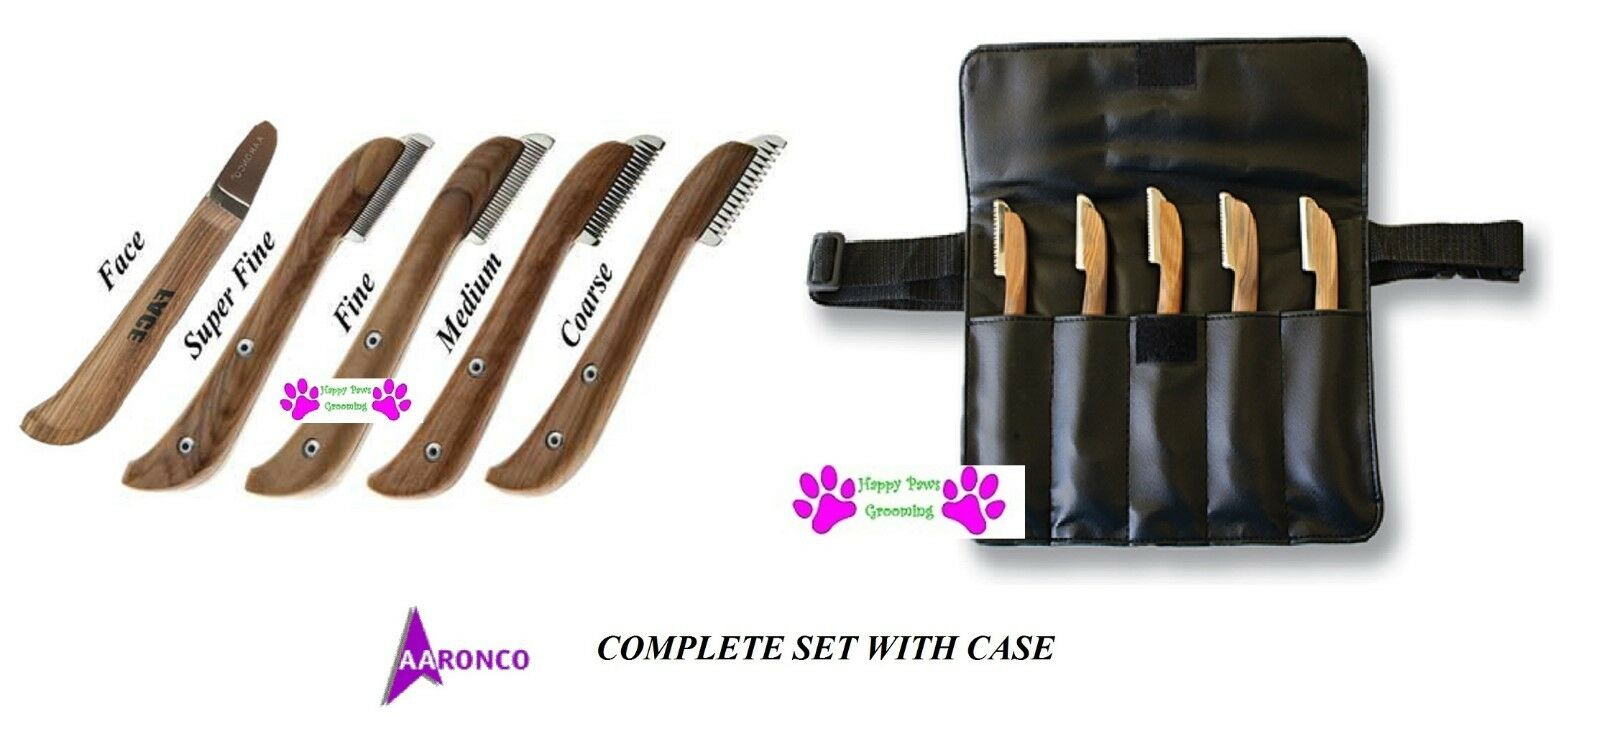 Genuine AARONCO Pro Stripping Knives 5 pc KNIFE SET w Case DOG Grooming Carding